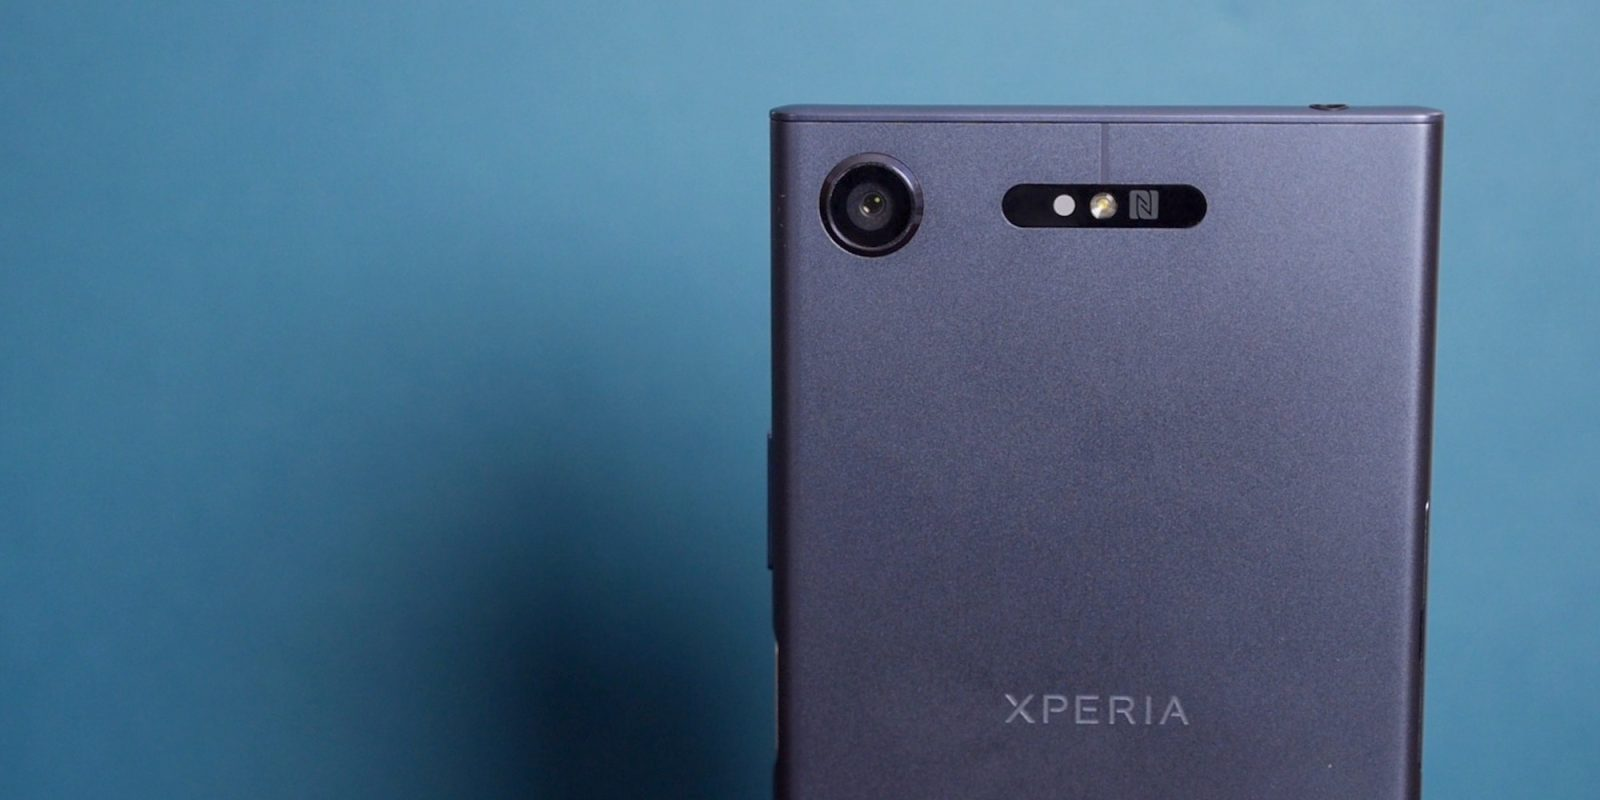 Review: Xperia XZ1 is Sony's most refined flagship yet, but